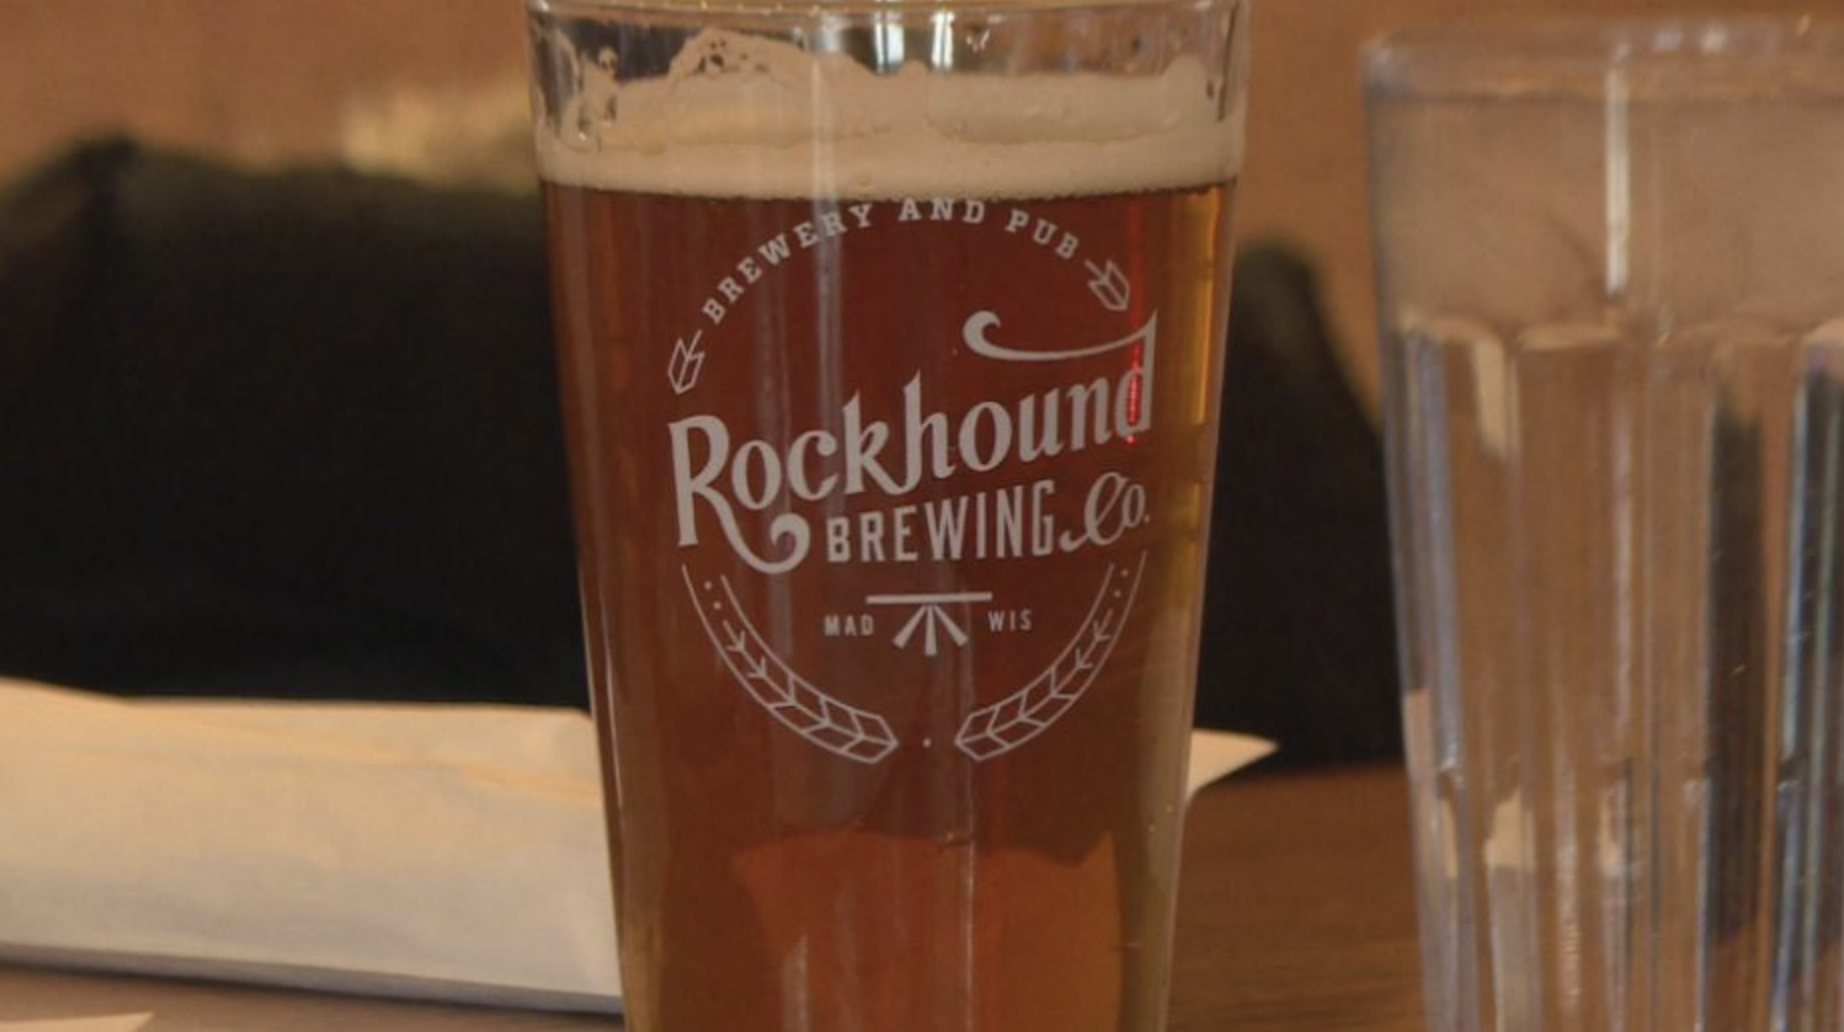 The Rockhound Brewing Company of Madison is closed forever